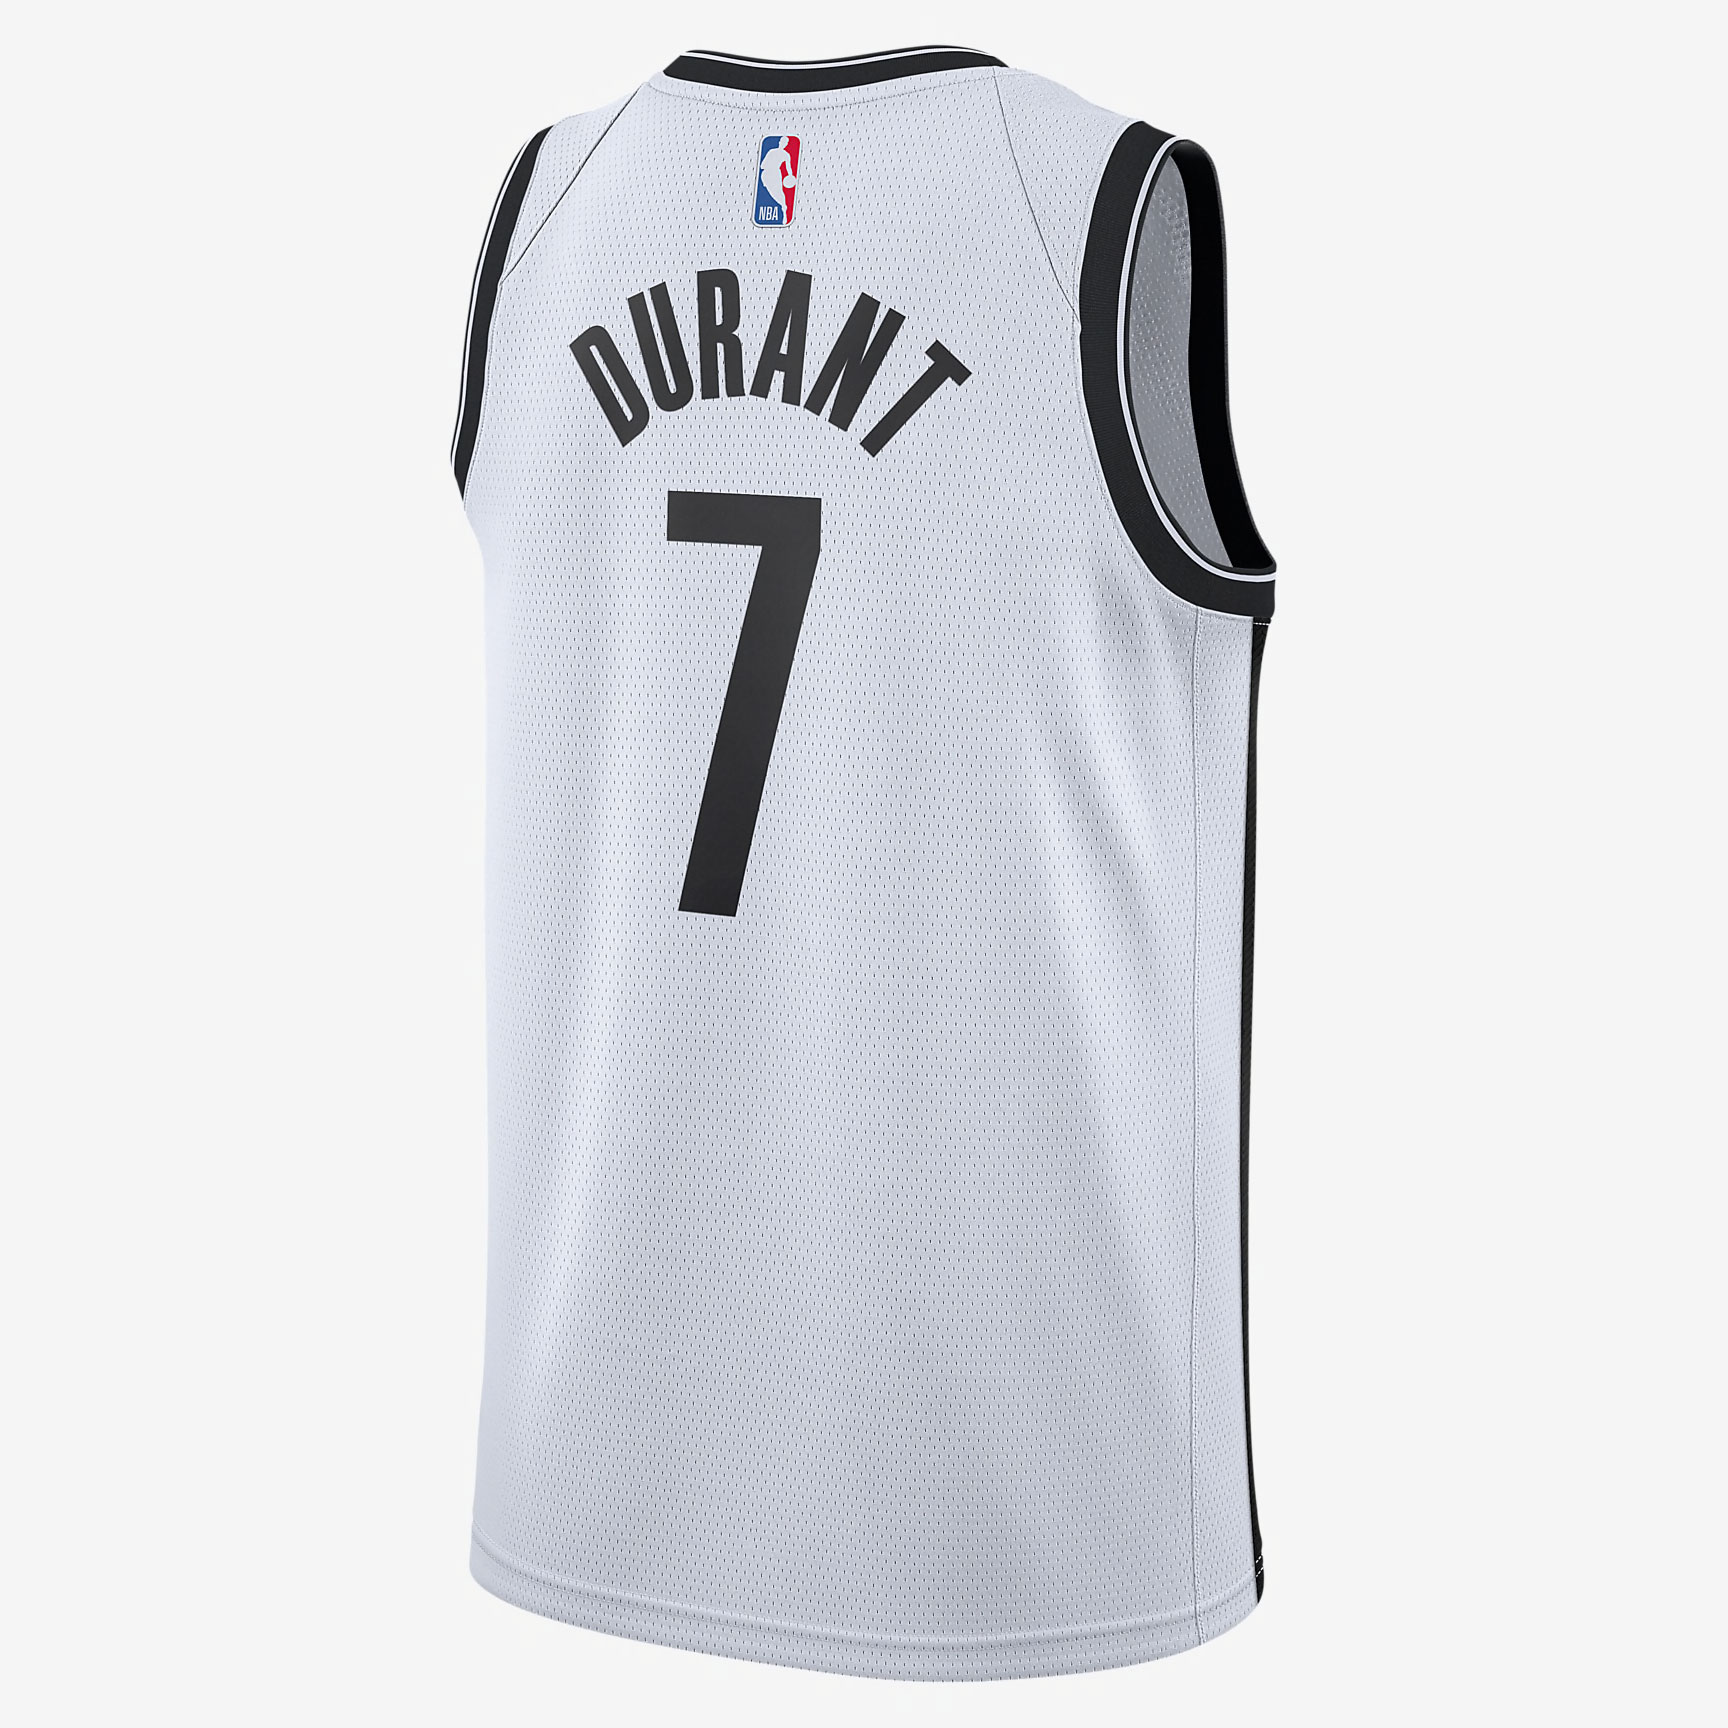 kevin-durant-brooklyn-nets-nike-jersey-white-black-2